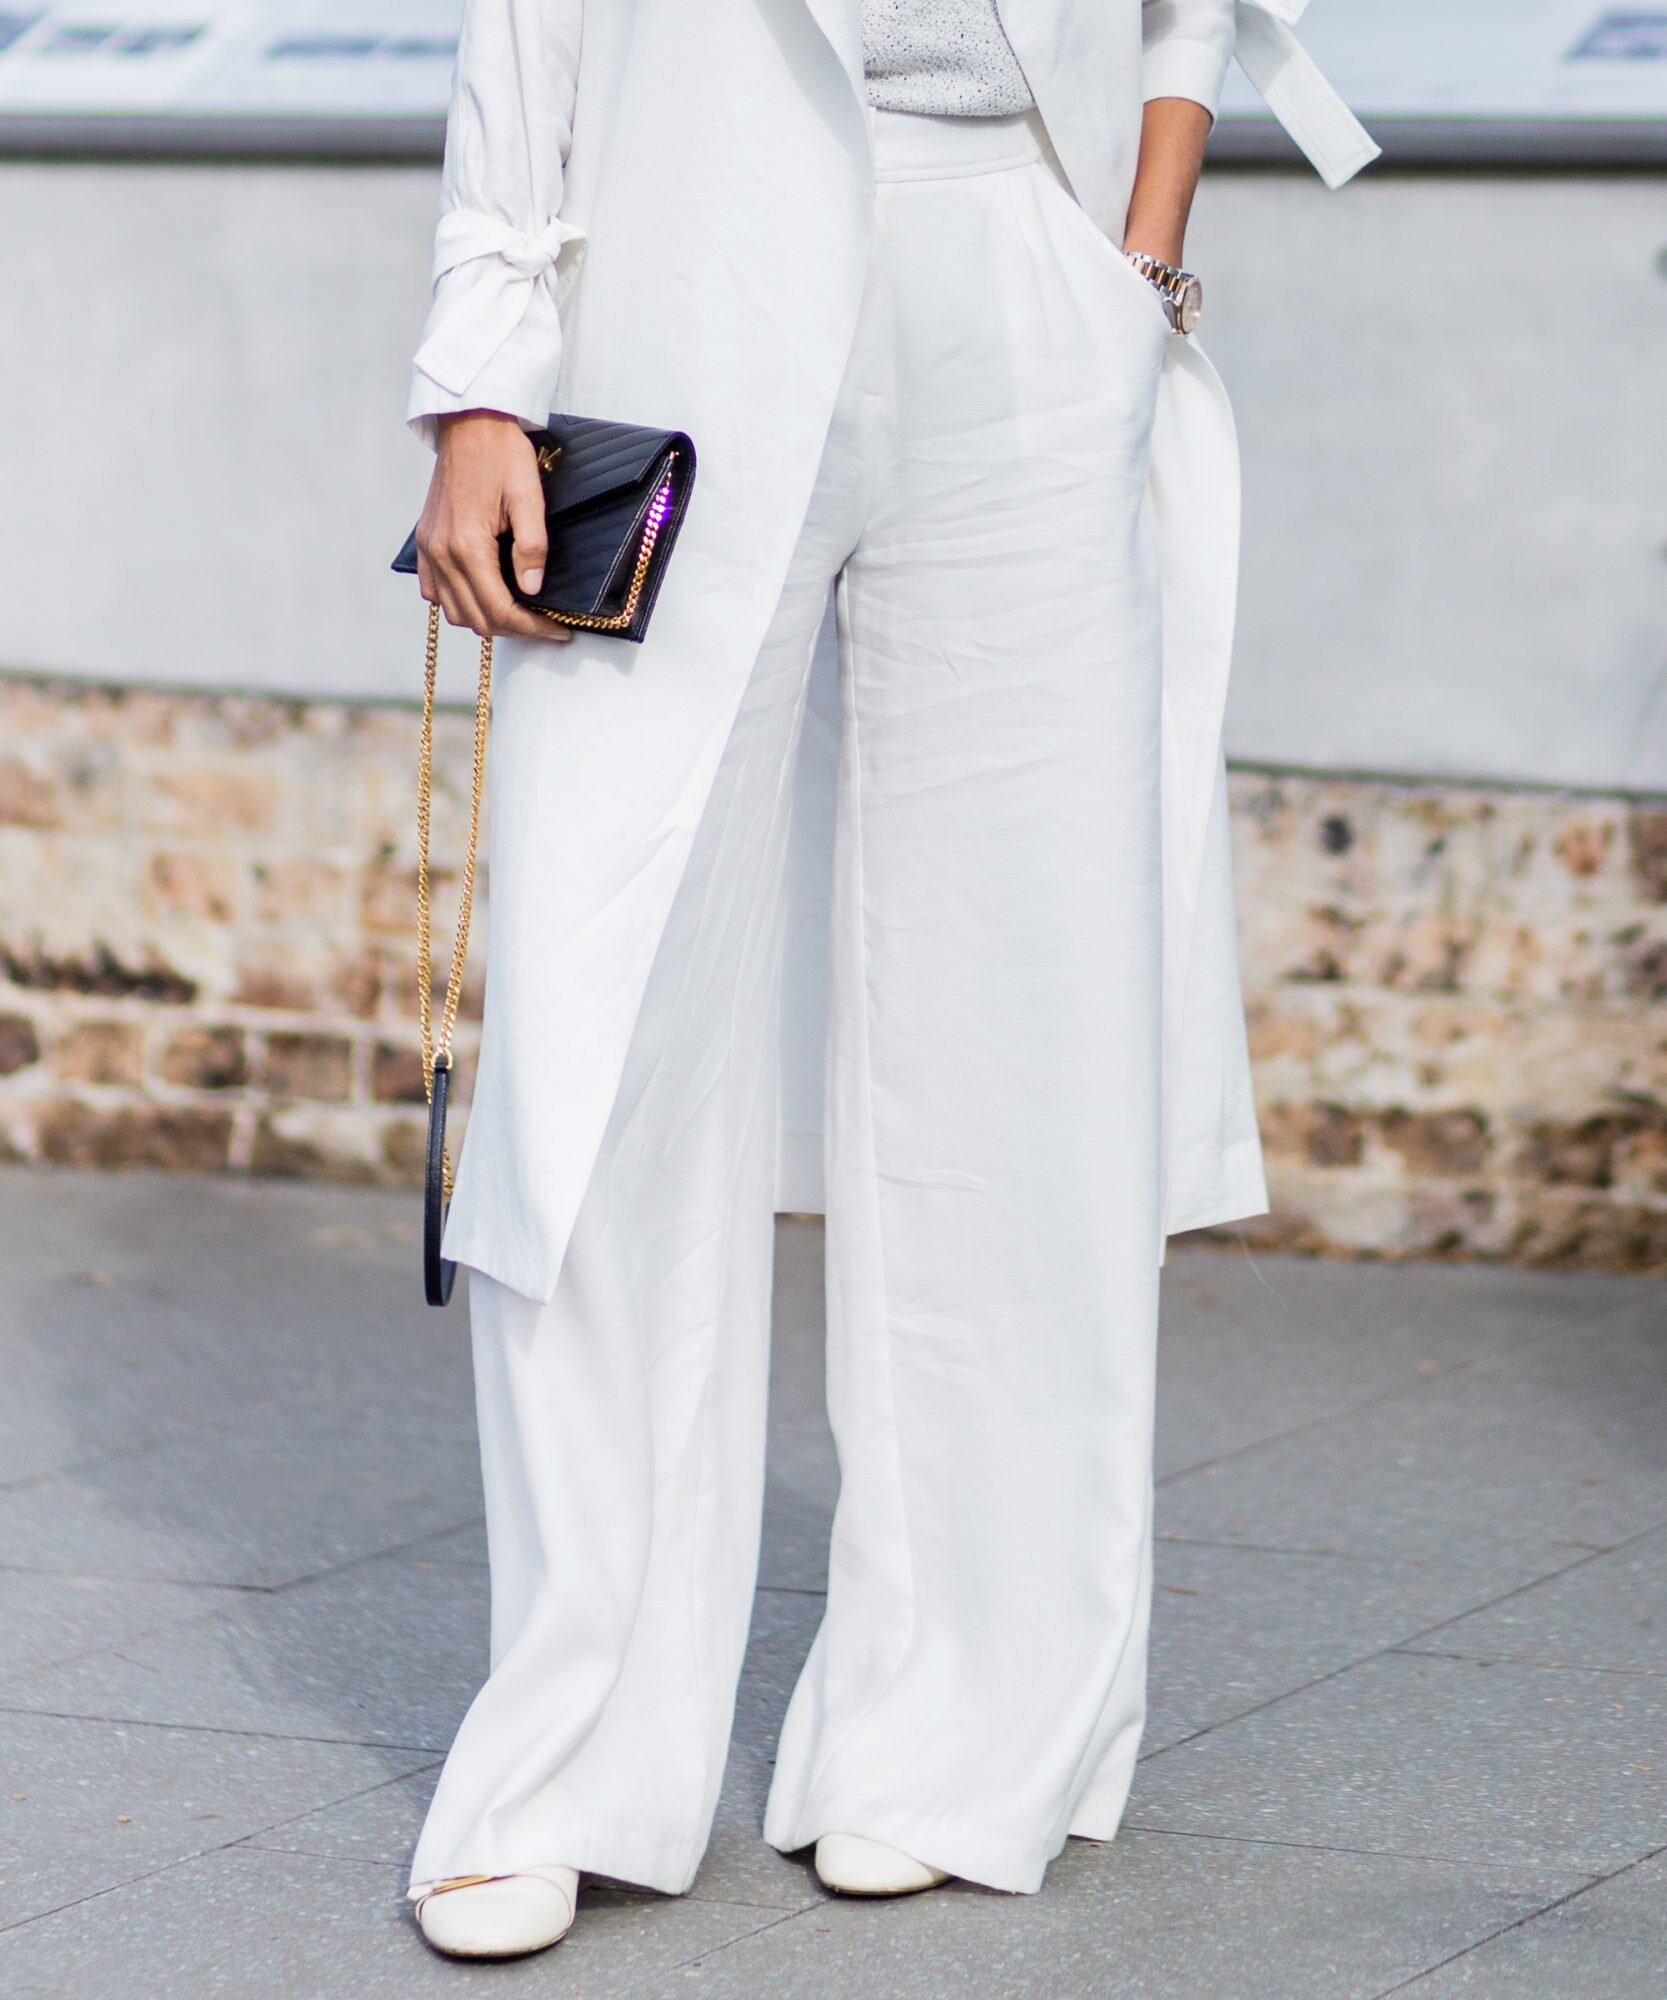 64c29e7e84 Perfect Pairings: 7 Ways to Style Wide-Leg Pants With Flats